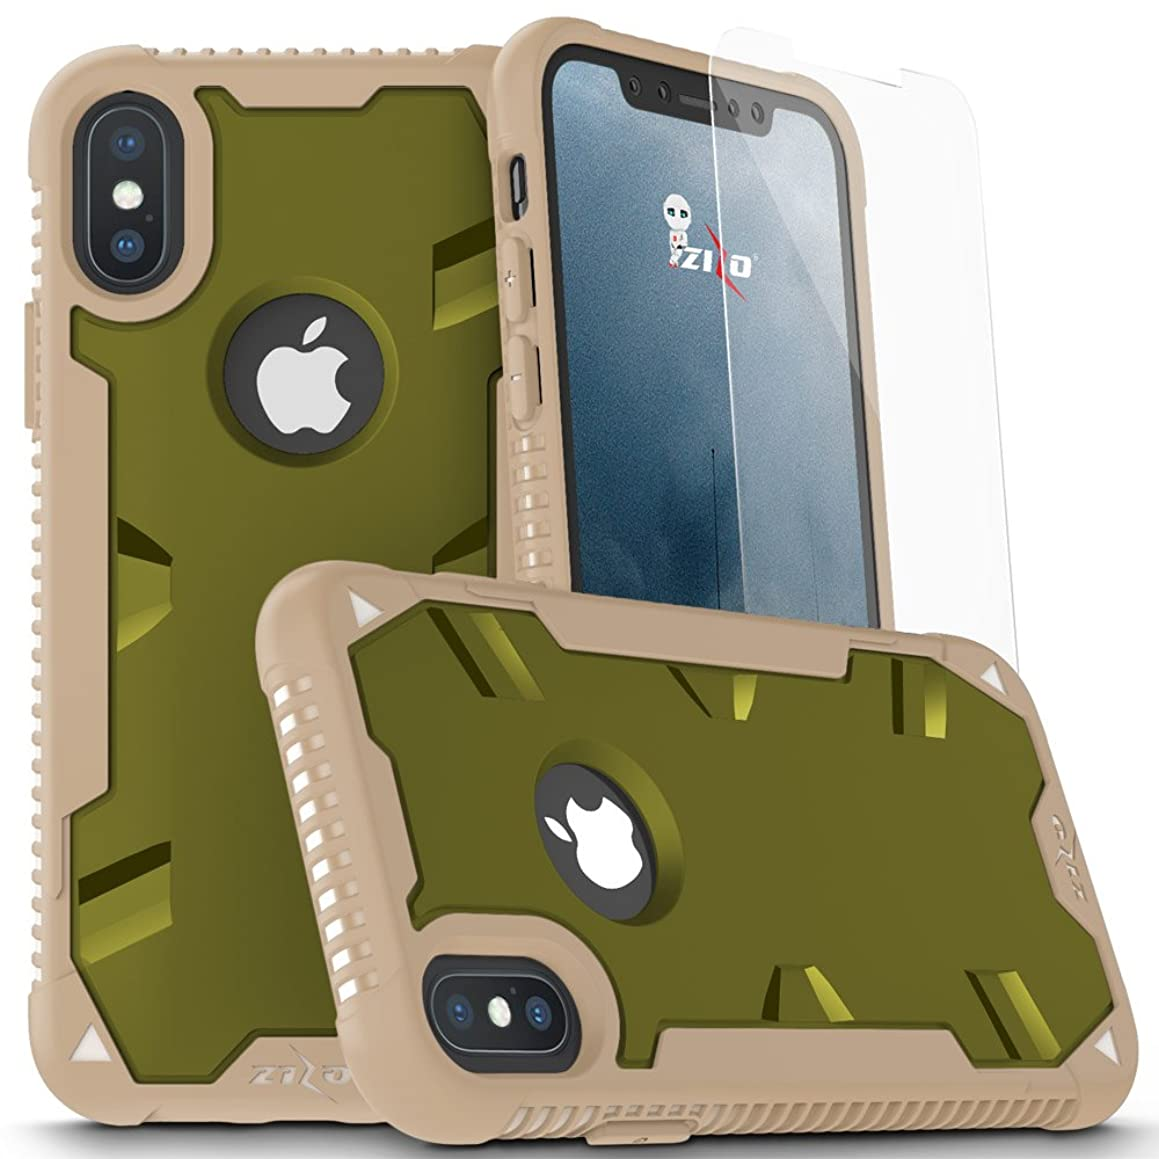 Zizo Proton 2.0 Series Compatible with iPhone X Case Military Grade Drop Tested with Tempered Glass Screen Protector iPhone Xs Case Desert CAMO Green